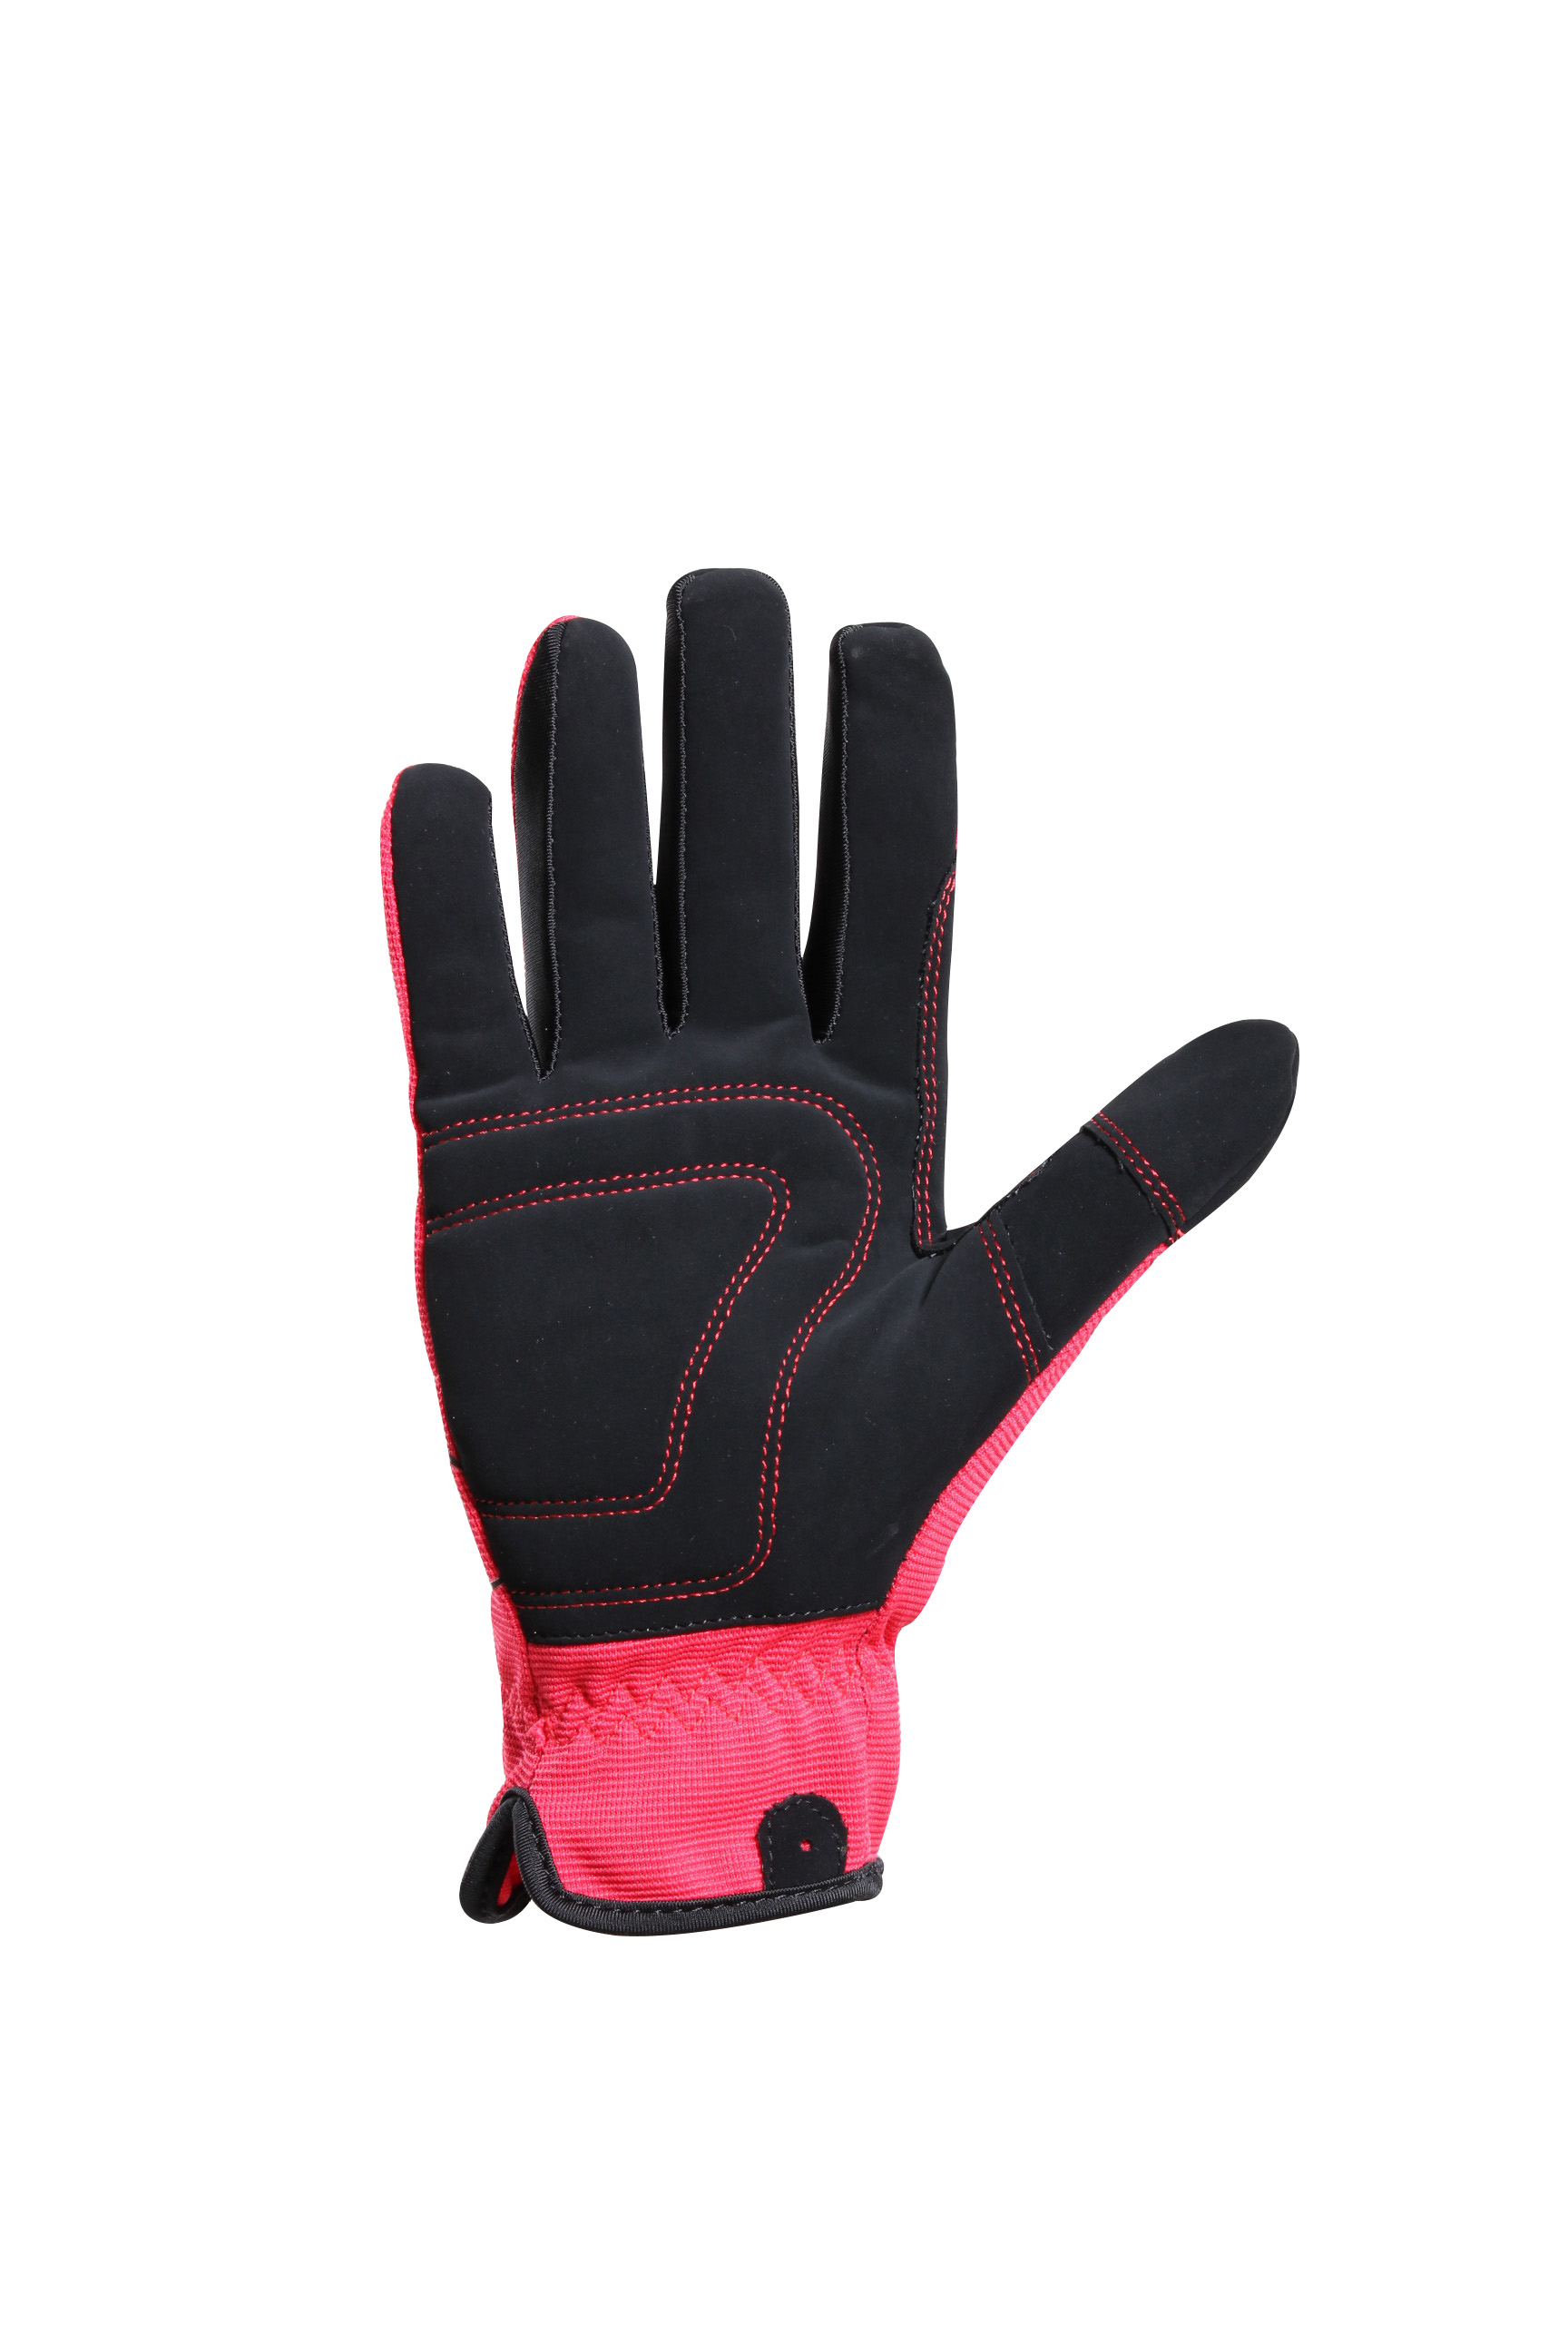 factory sale professional cycling gloves